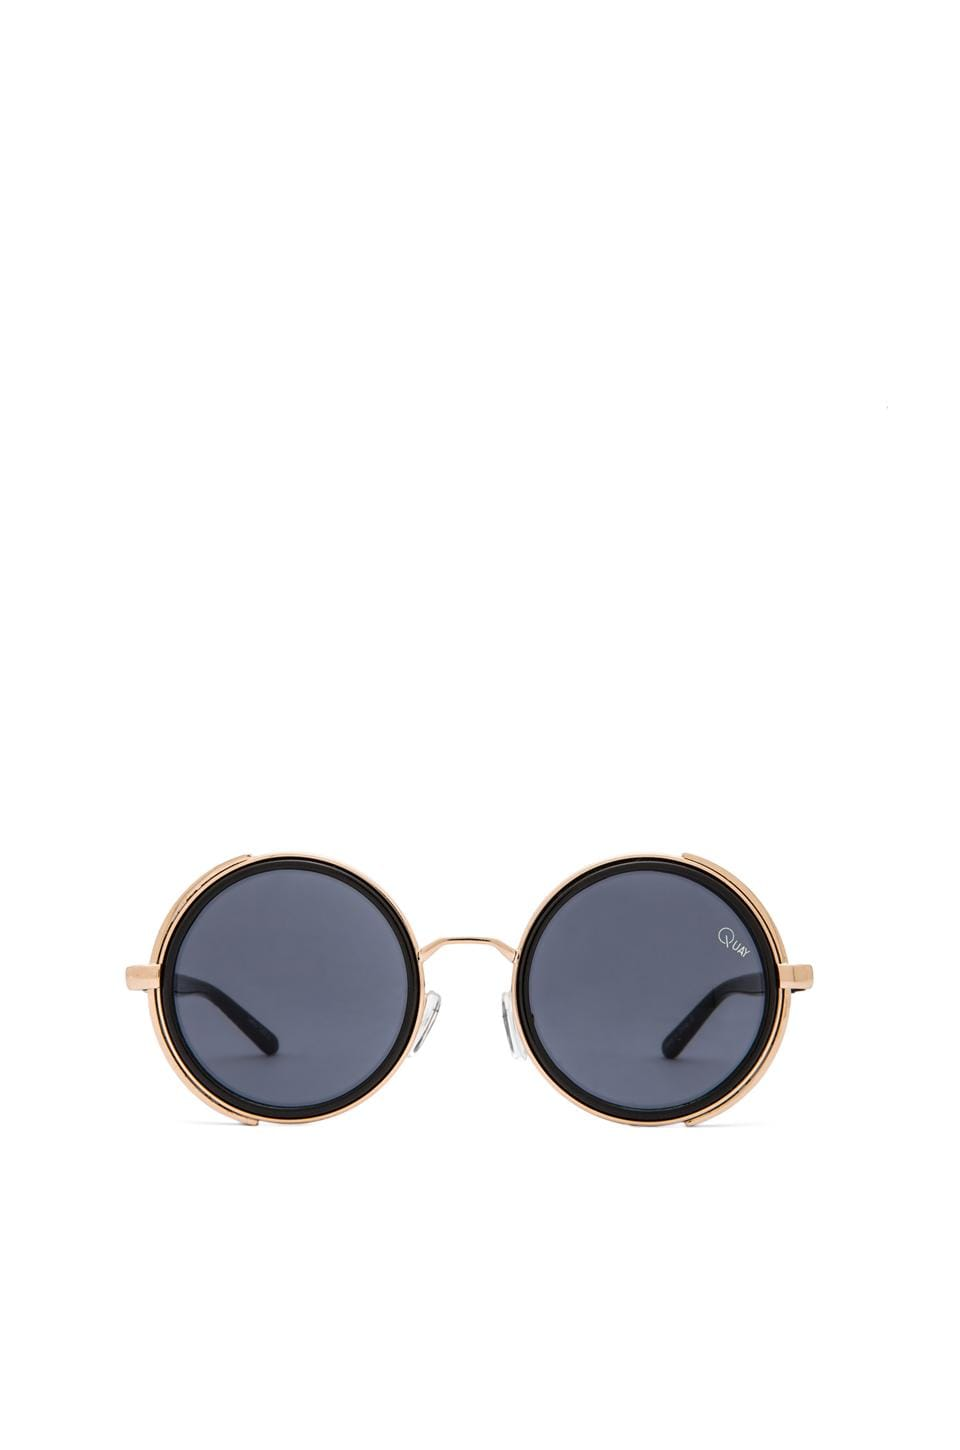 Quay Freya Sunglasses in Black